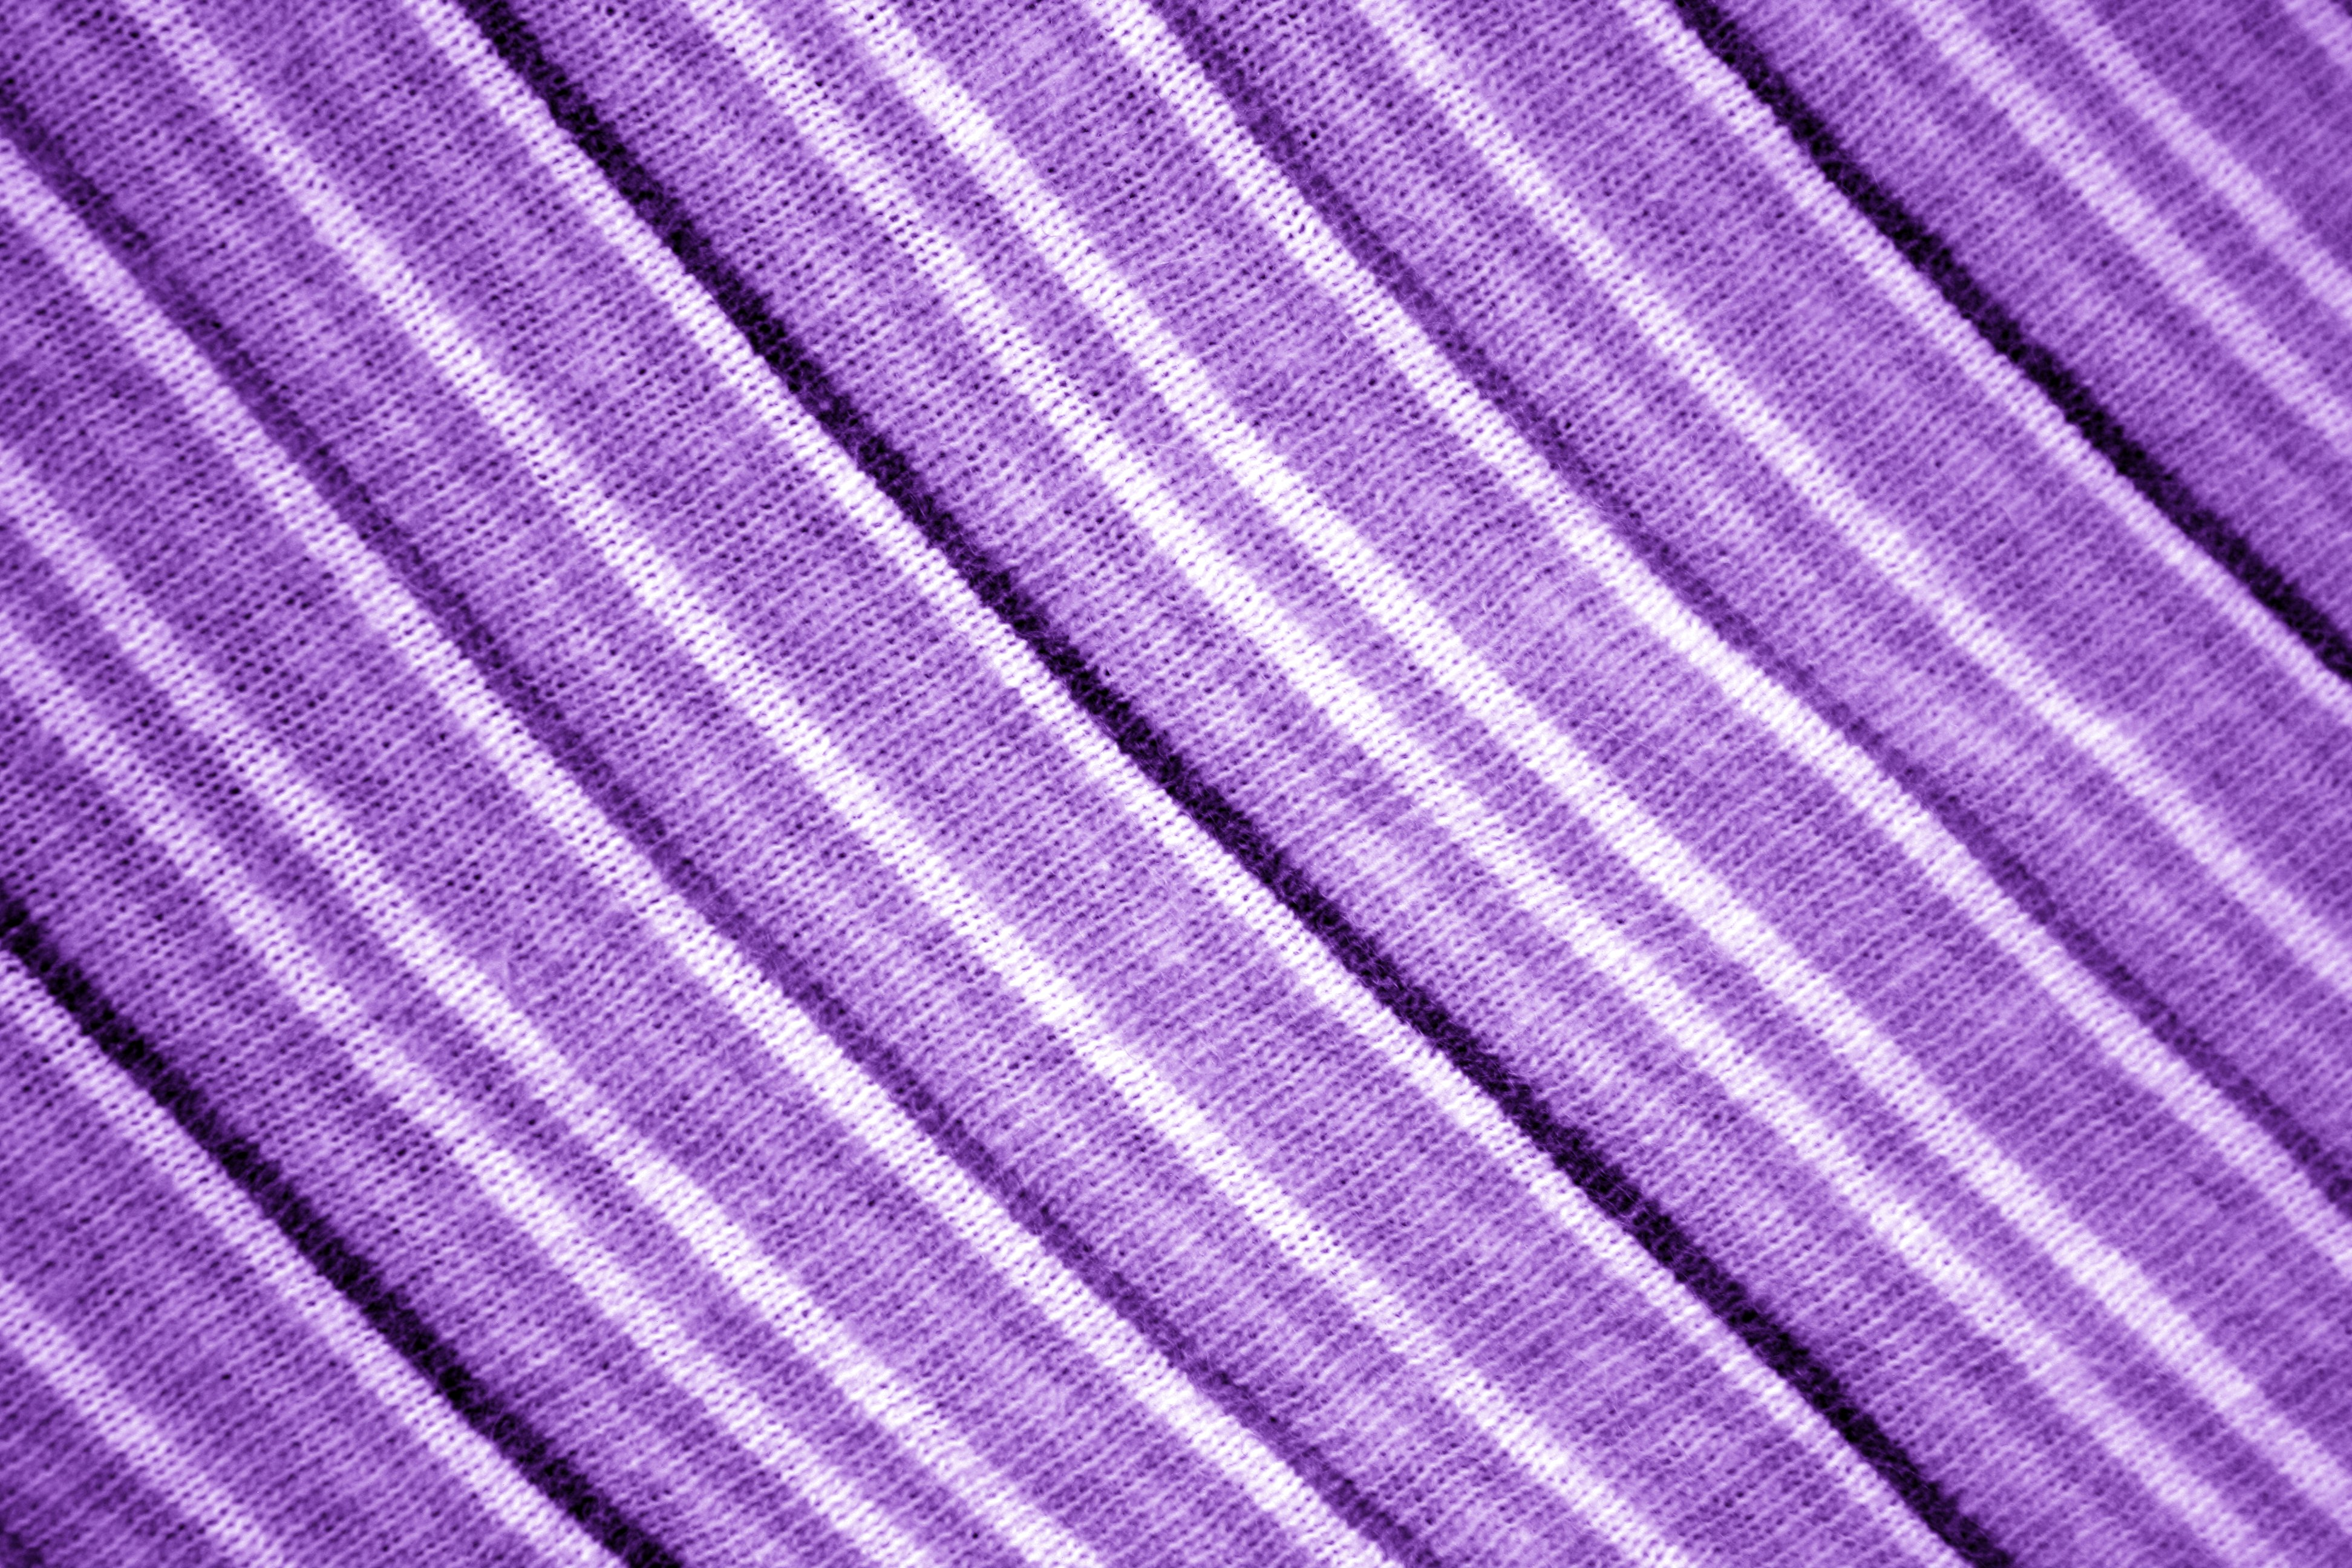 Striped fabric texture green on white free high resolution photo - Diagonally Striped Purple Knit Fabric Texture Picture